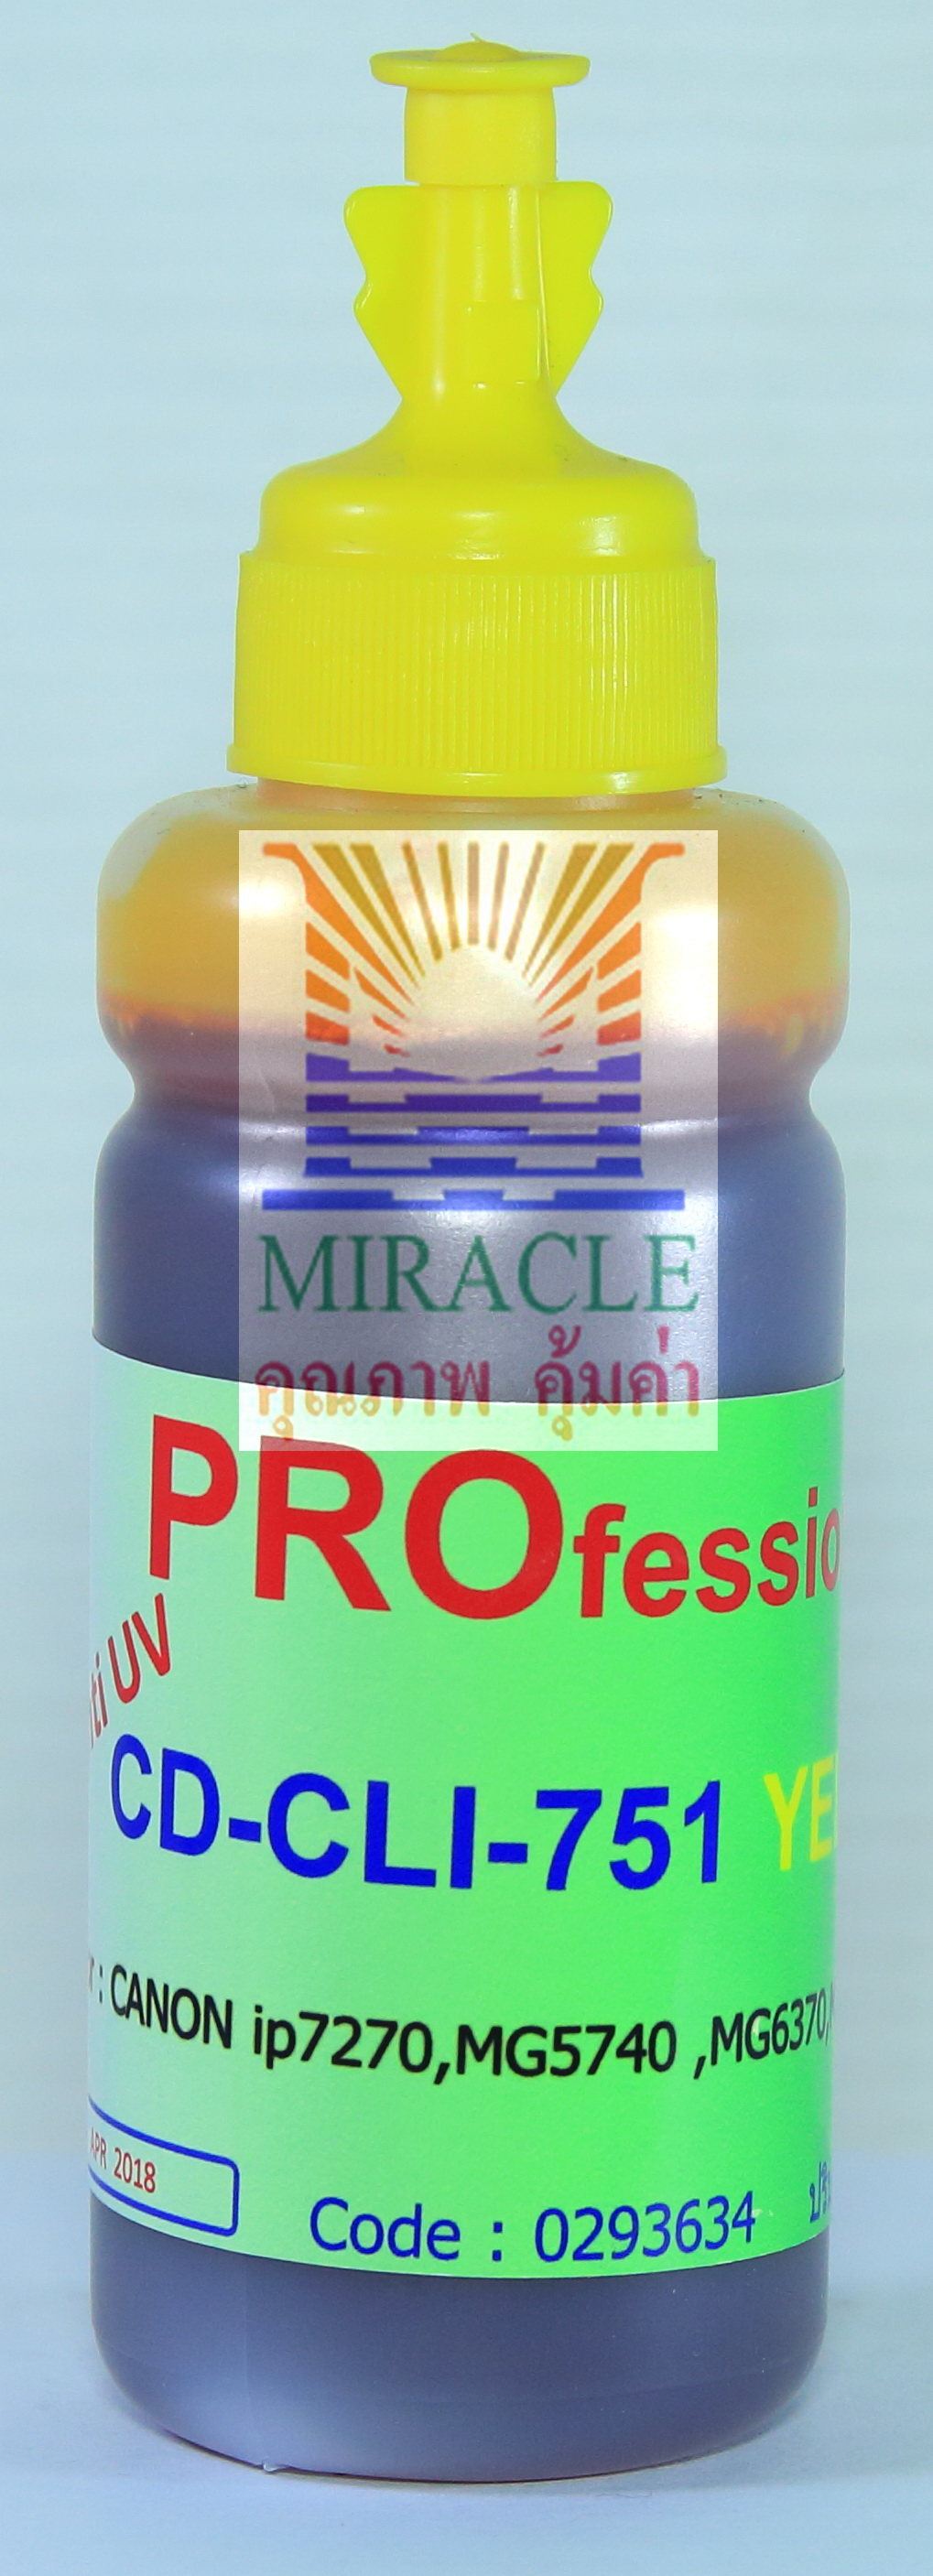 CD-CLI751Y REFILL INK MIRACLE PRO 100 cc CANON YELLOW